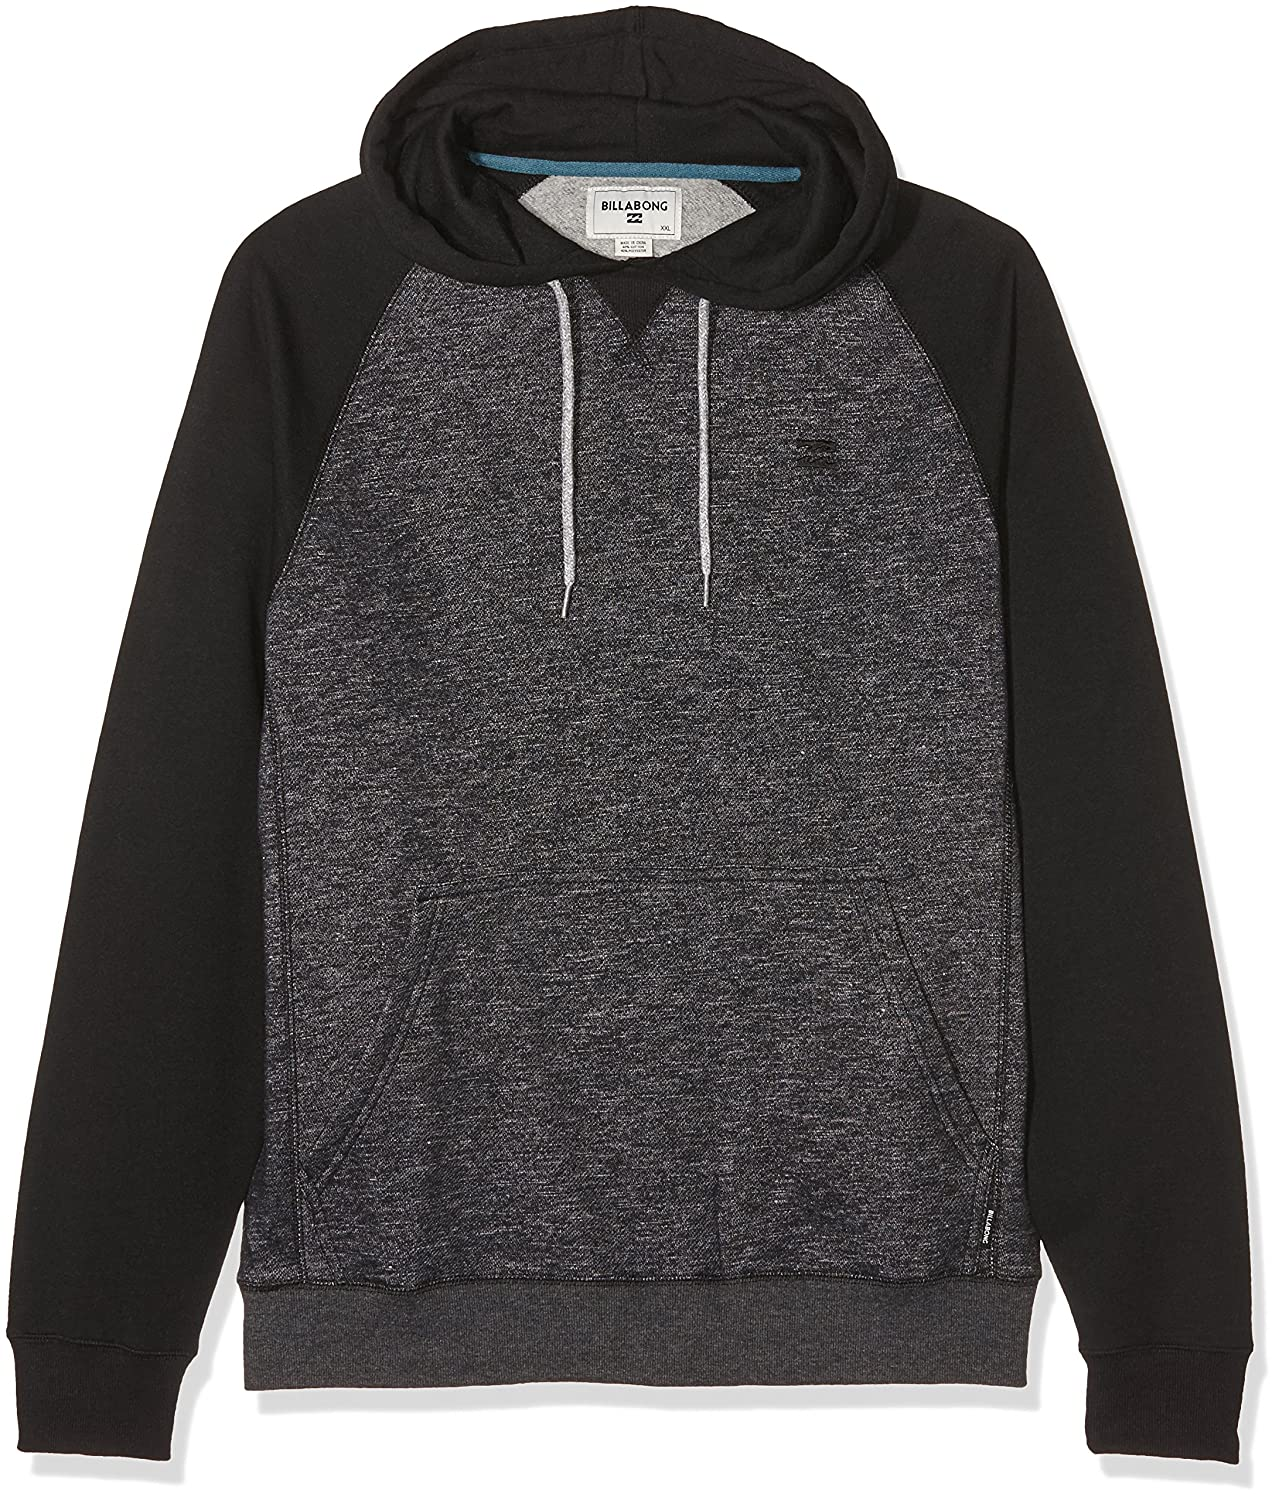 G.S.M. Europe - Billabong Herren Kapuzenpulli Balance Pullover, BLACK HEATHER, Gr.